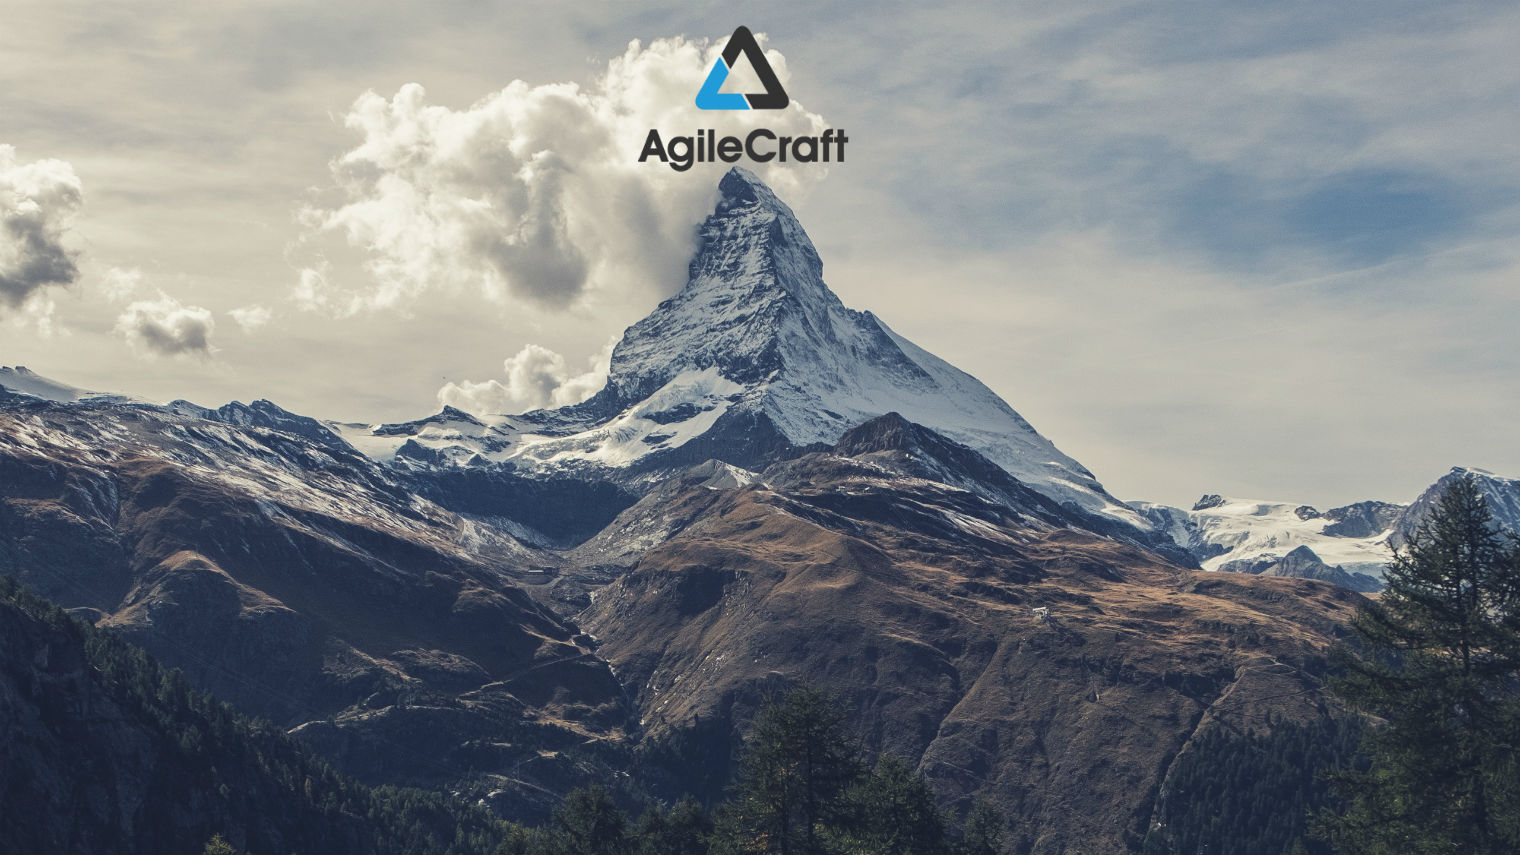 AgileCraft on top of a mountain